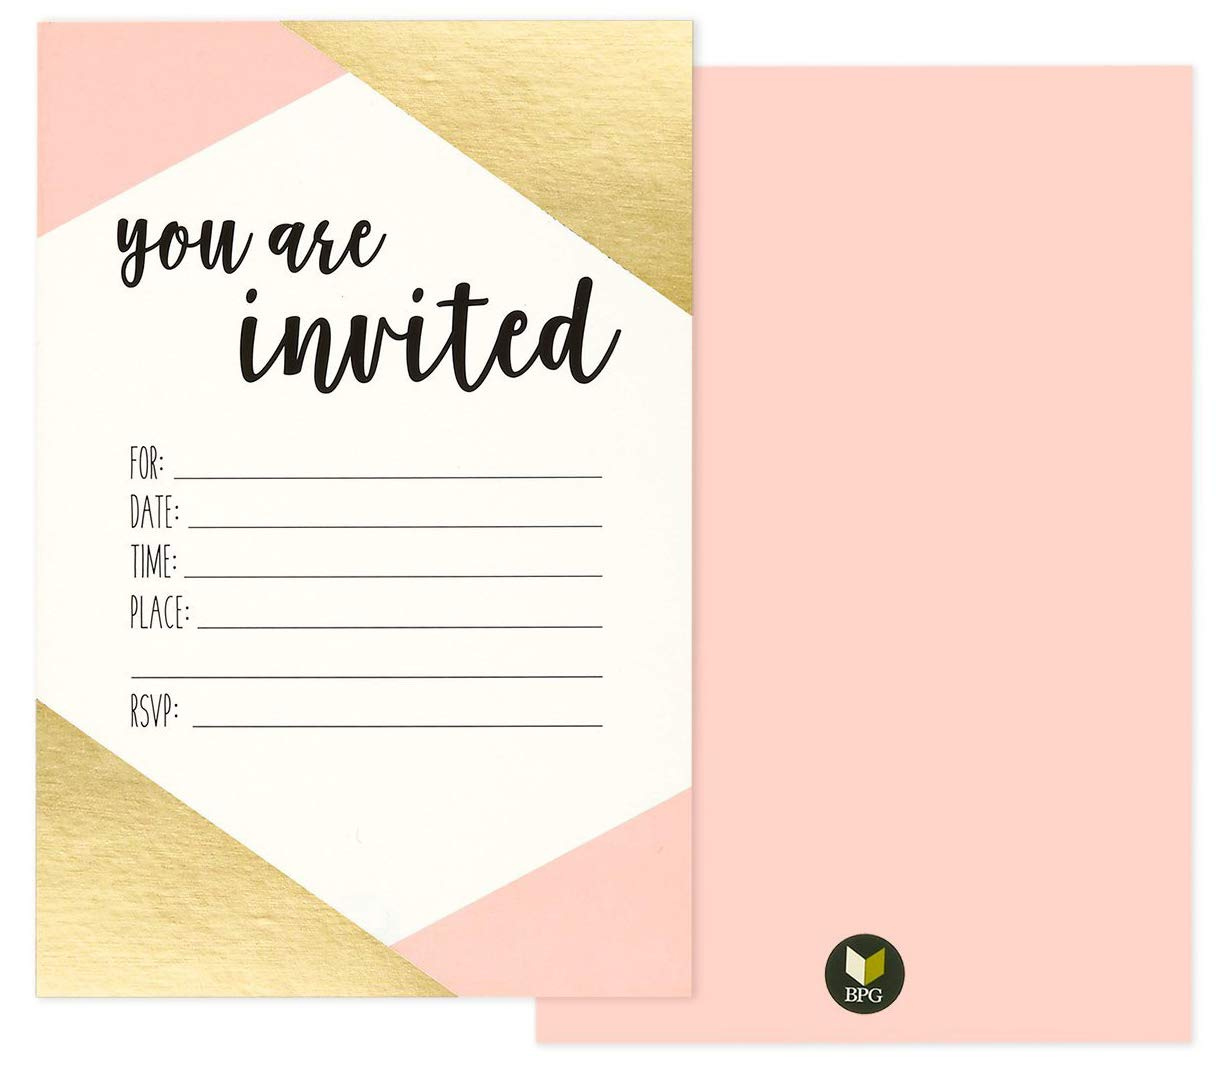 amazoncom 36 pack pink and gold foil you are invited minimalist party invitation card set shabby chic novelty invites for birthdays